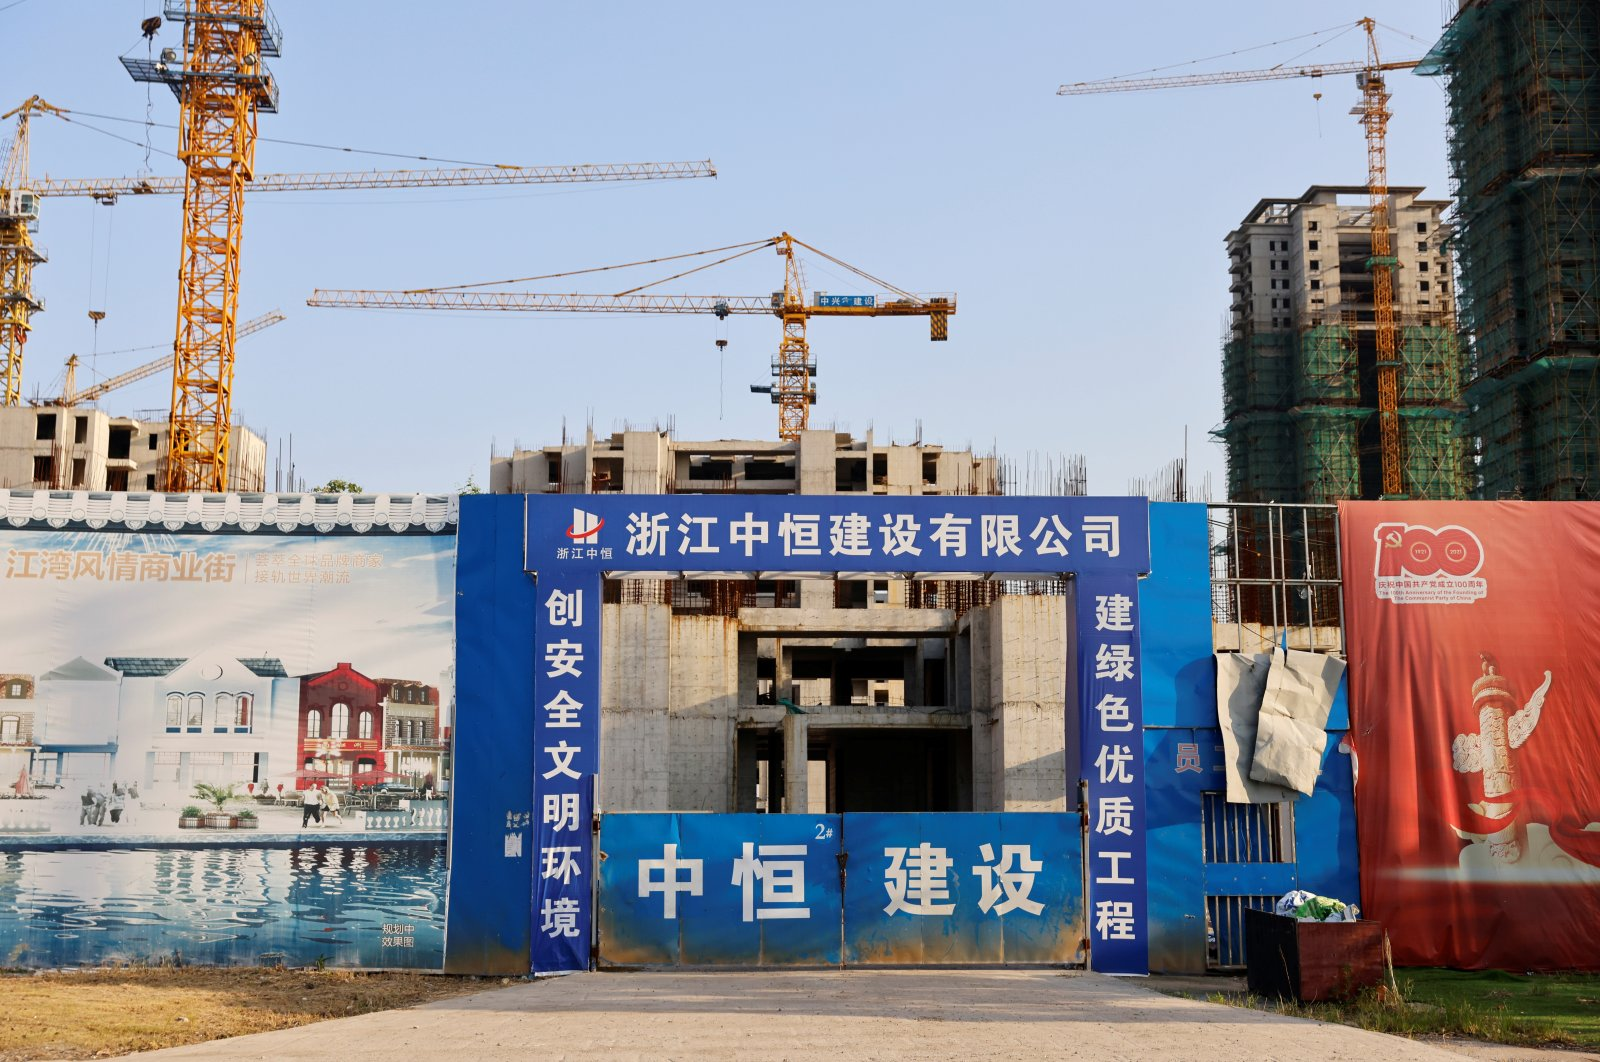 Cranes stand at the construction site of Evergrande Cultural Tourism City, a project developed by China Evergrande Group, in Suzhou's Taicang, Jiangsu province, China, Sept. 23, 2021. (Reuters Photo)